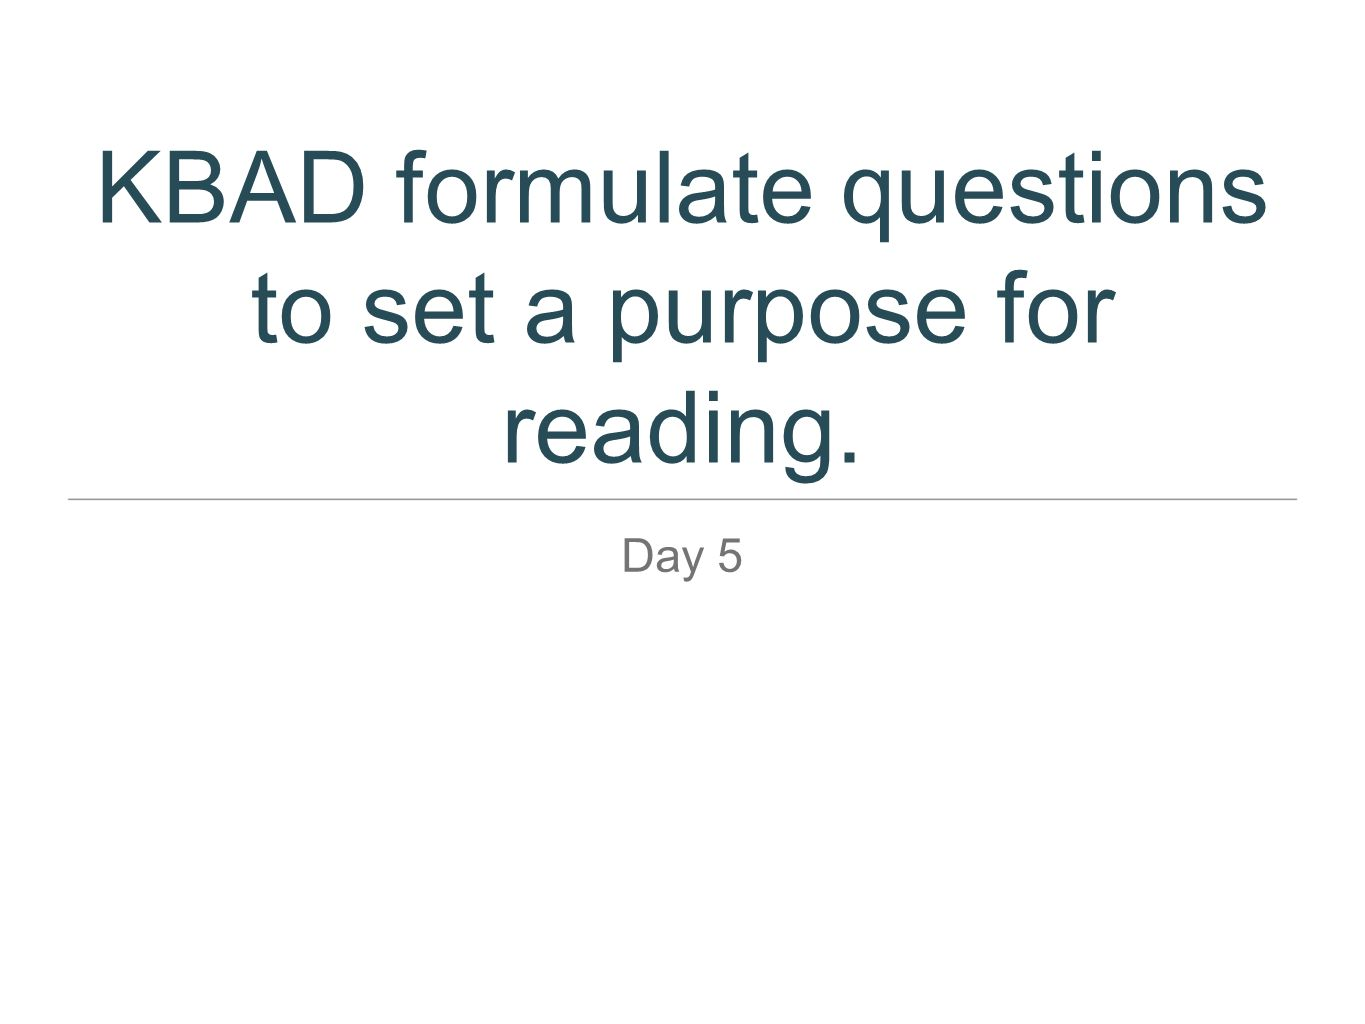 KBAD formulate questions to set a purpose for reading.